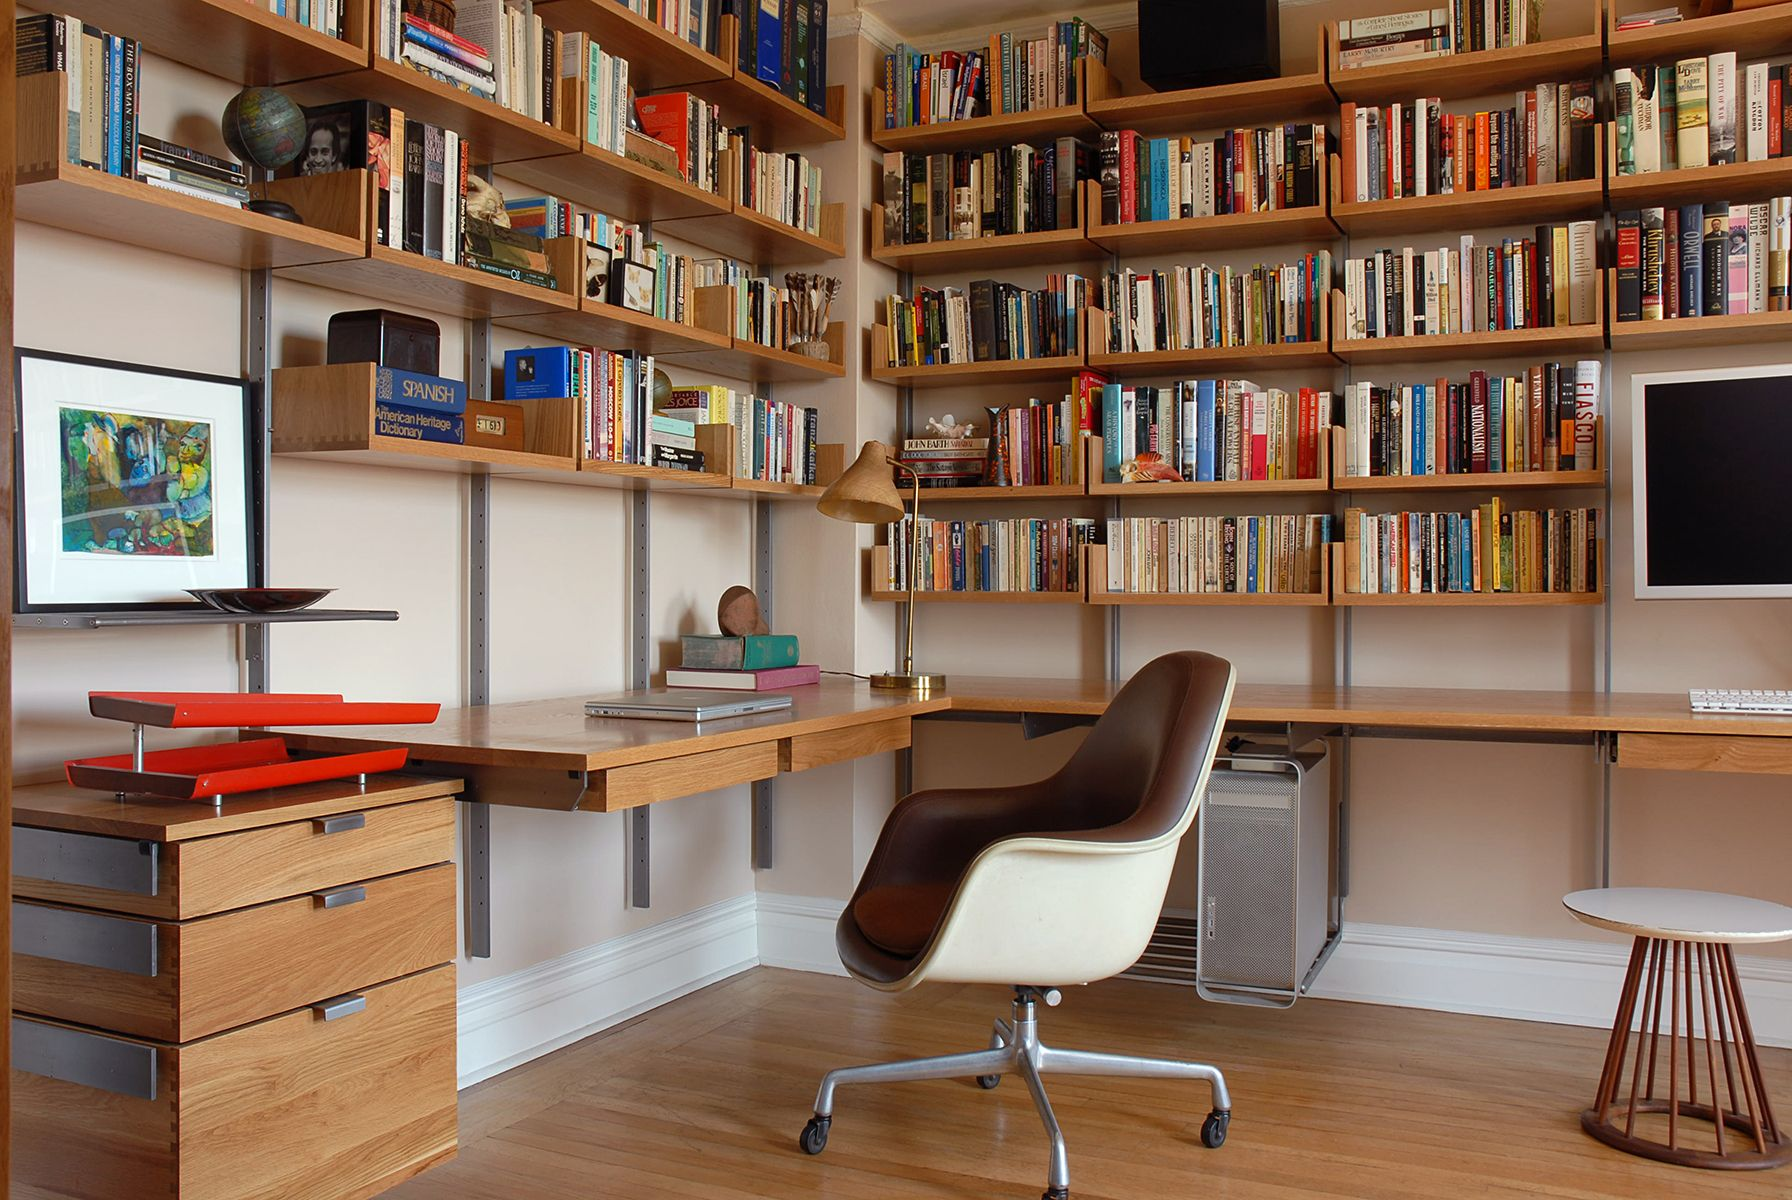 Atlas Industries As4 Modular Shelving System Home Office Floating